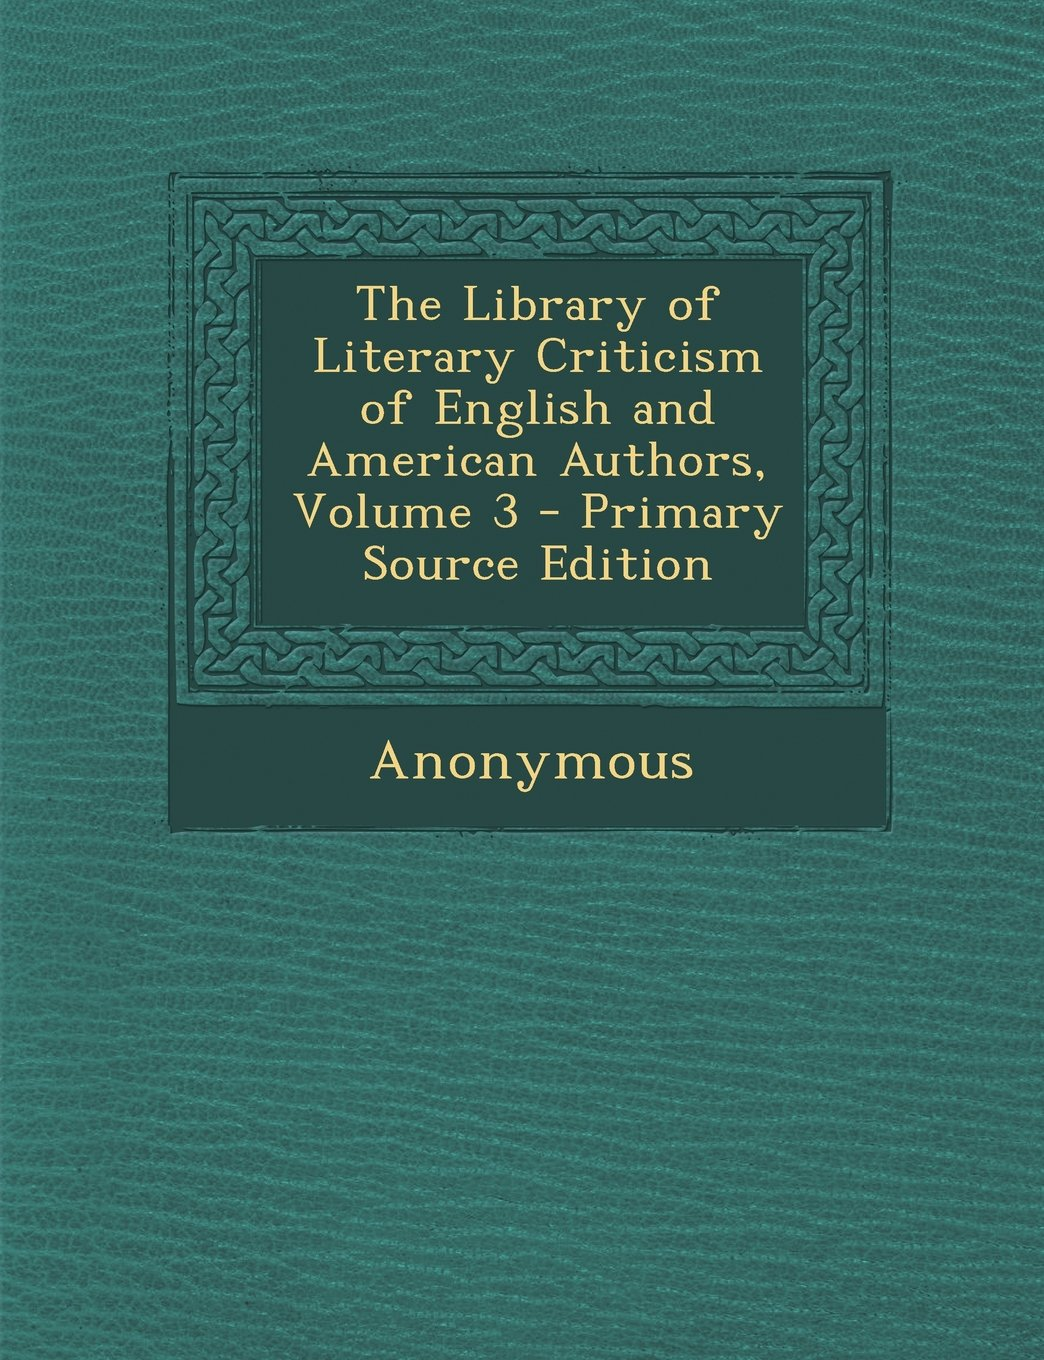 The Library of Literary Criticism of English and American Authors, Volume 3 - Primary Source Edition ebook